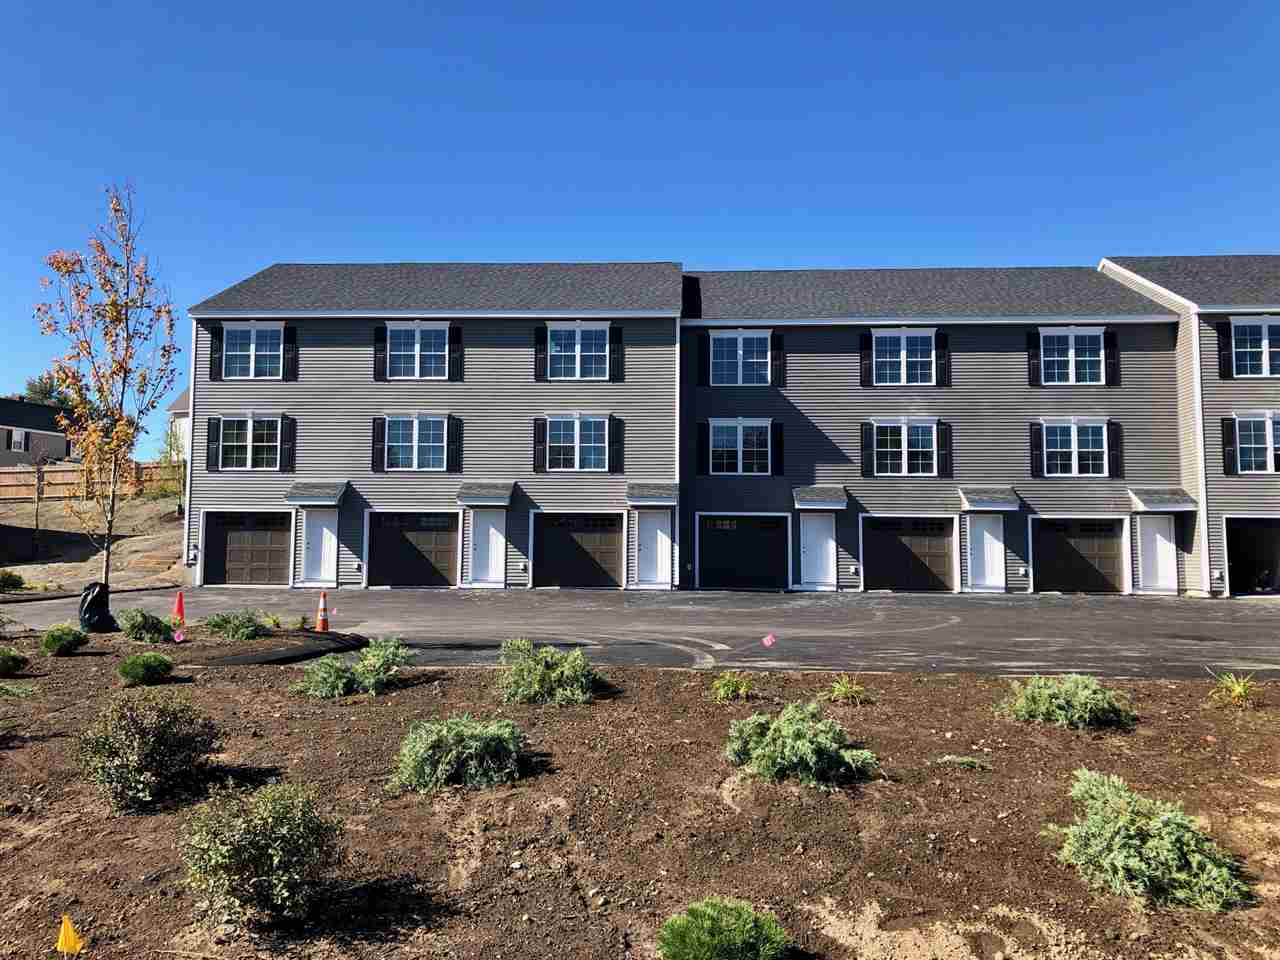 MLS 4773331: 3 Nutfield Court-Unit 2, Derry NH